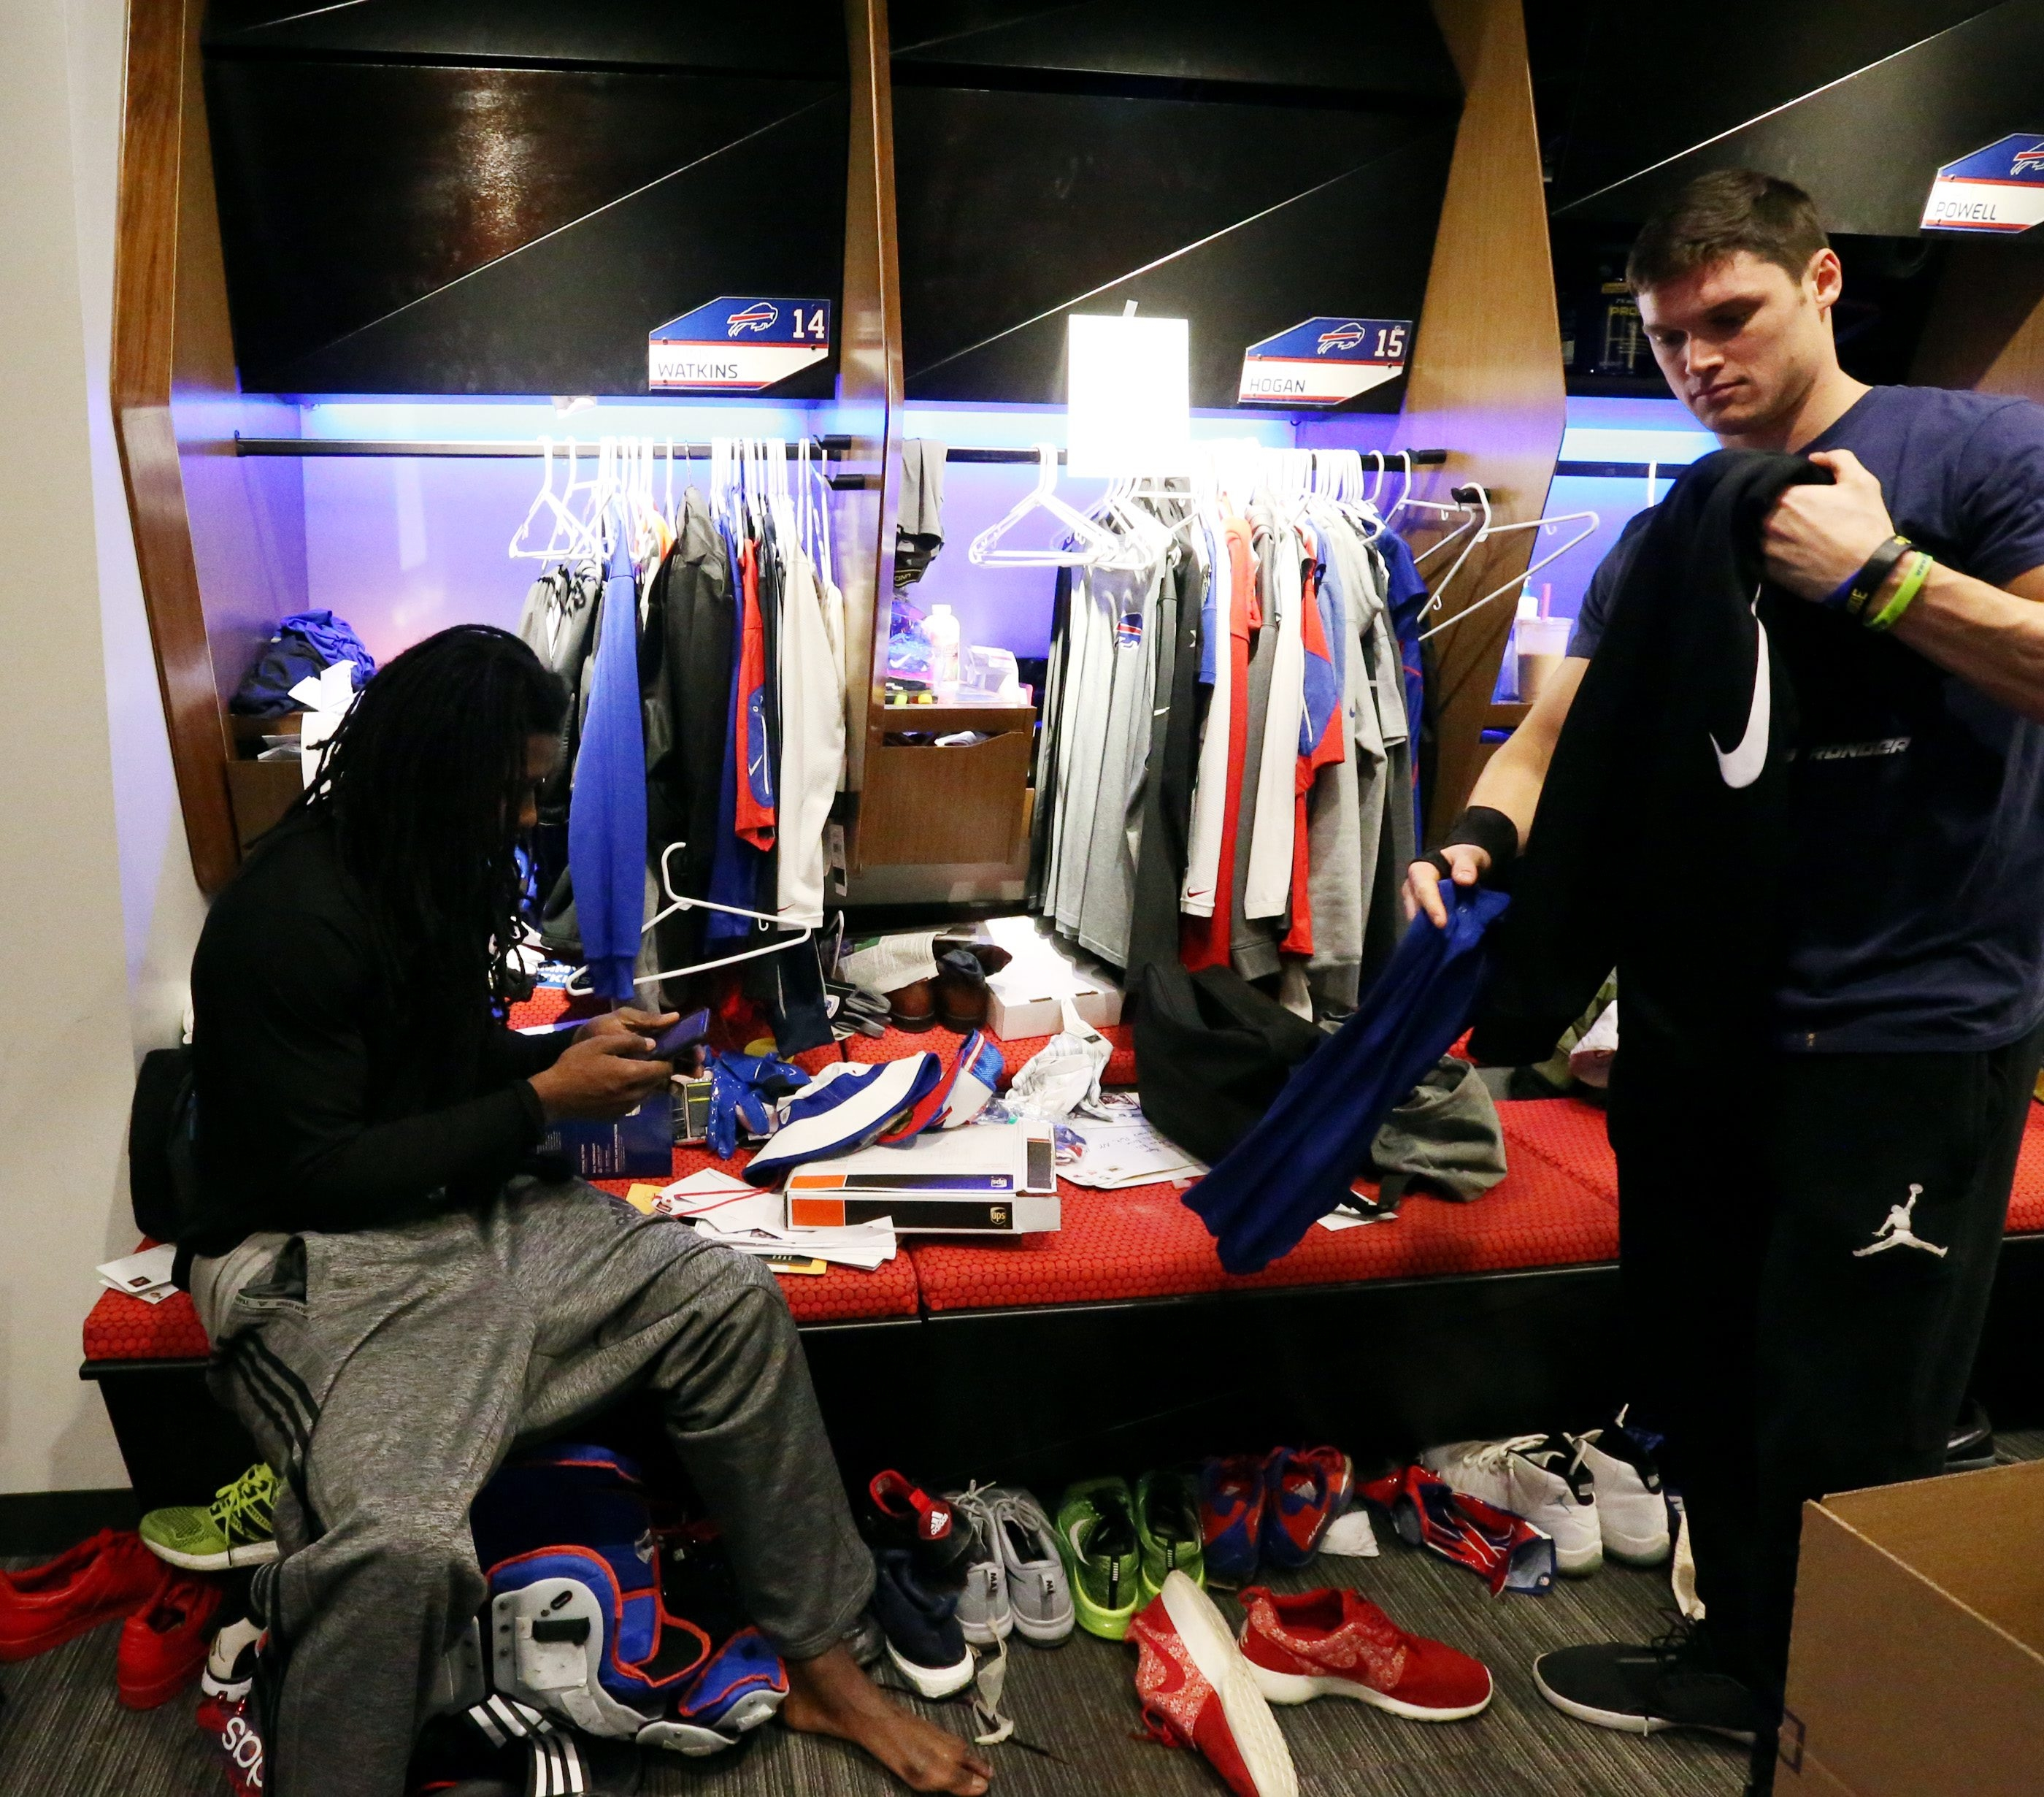 Buffalo Bills wide receiver Chris Hogan (15) packs up his clothes and equipment during the season-end locker-room cleanout.